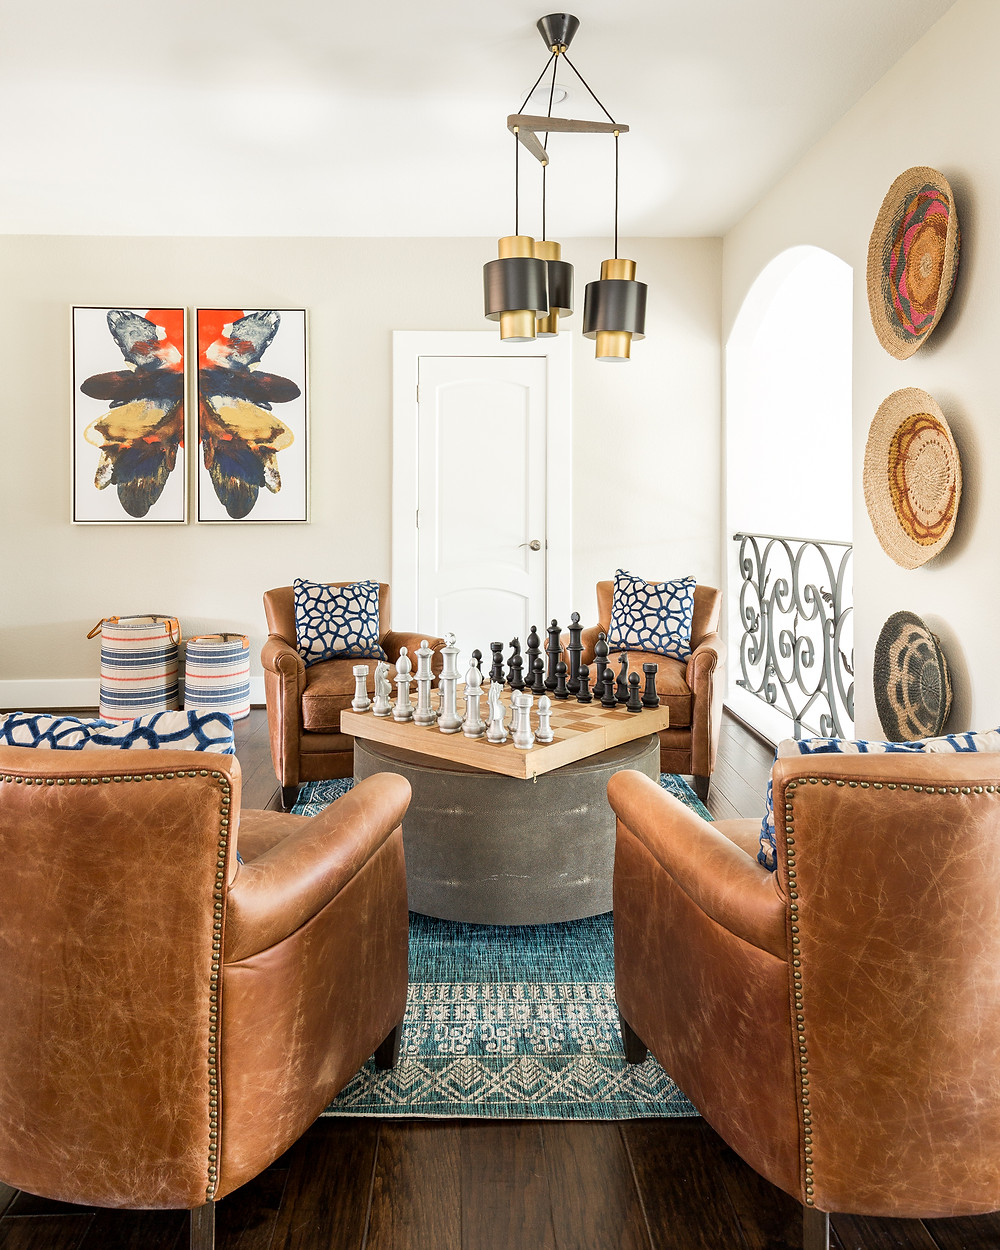 Leather chairs in a game room with African woven baskets